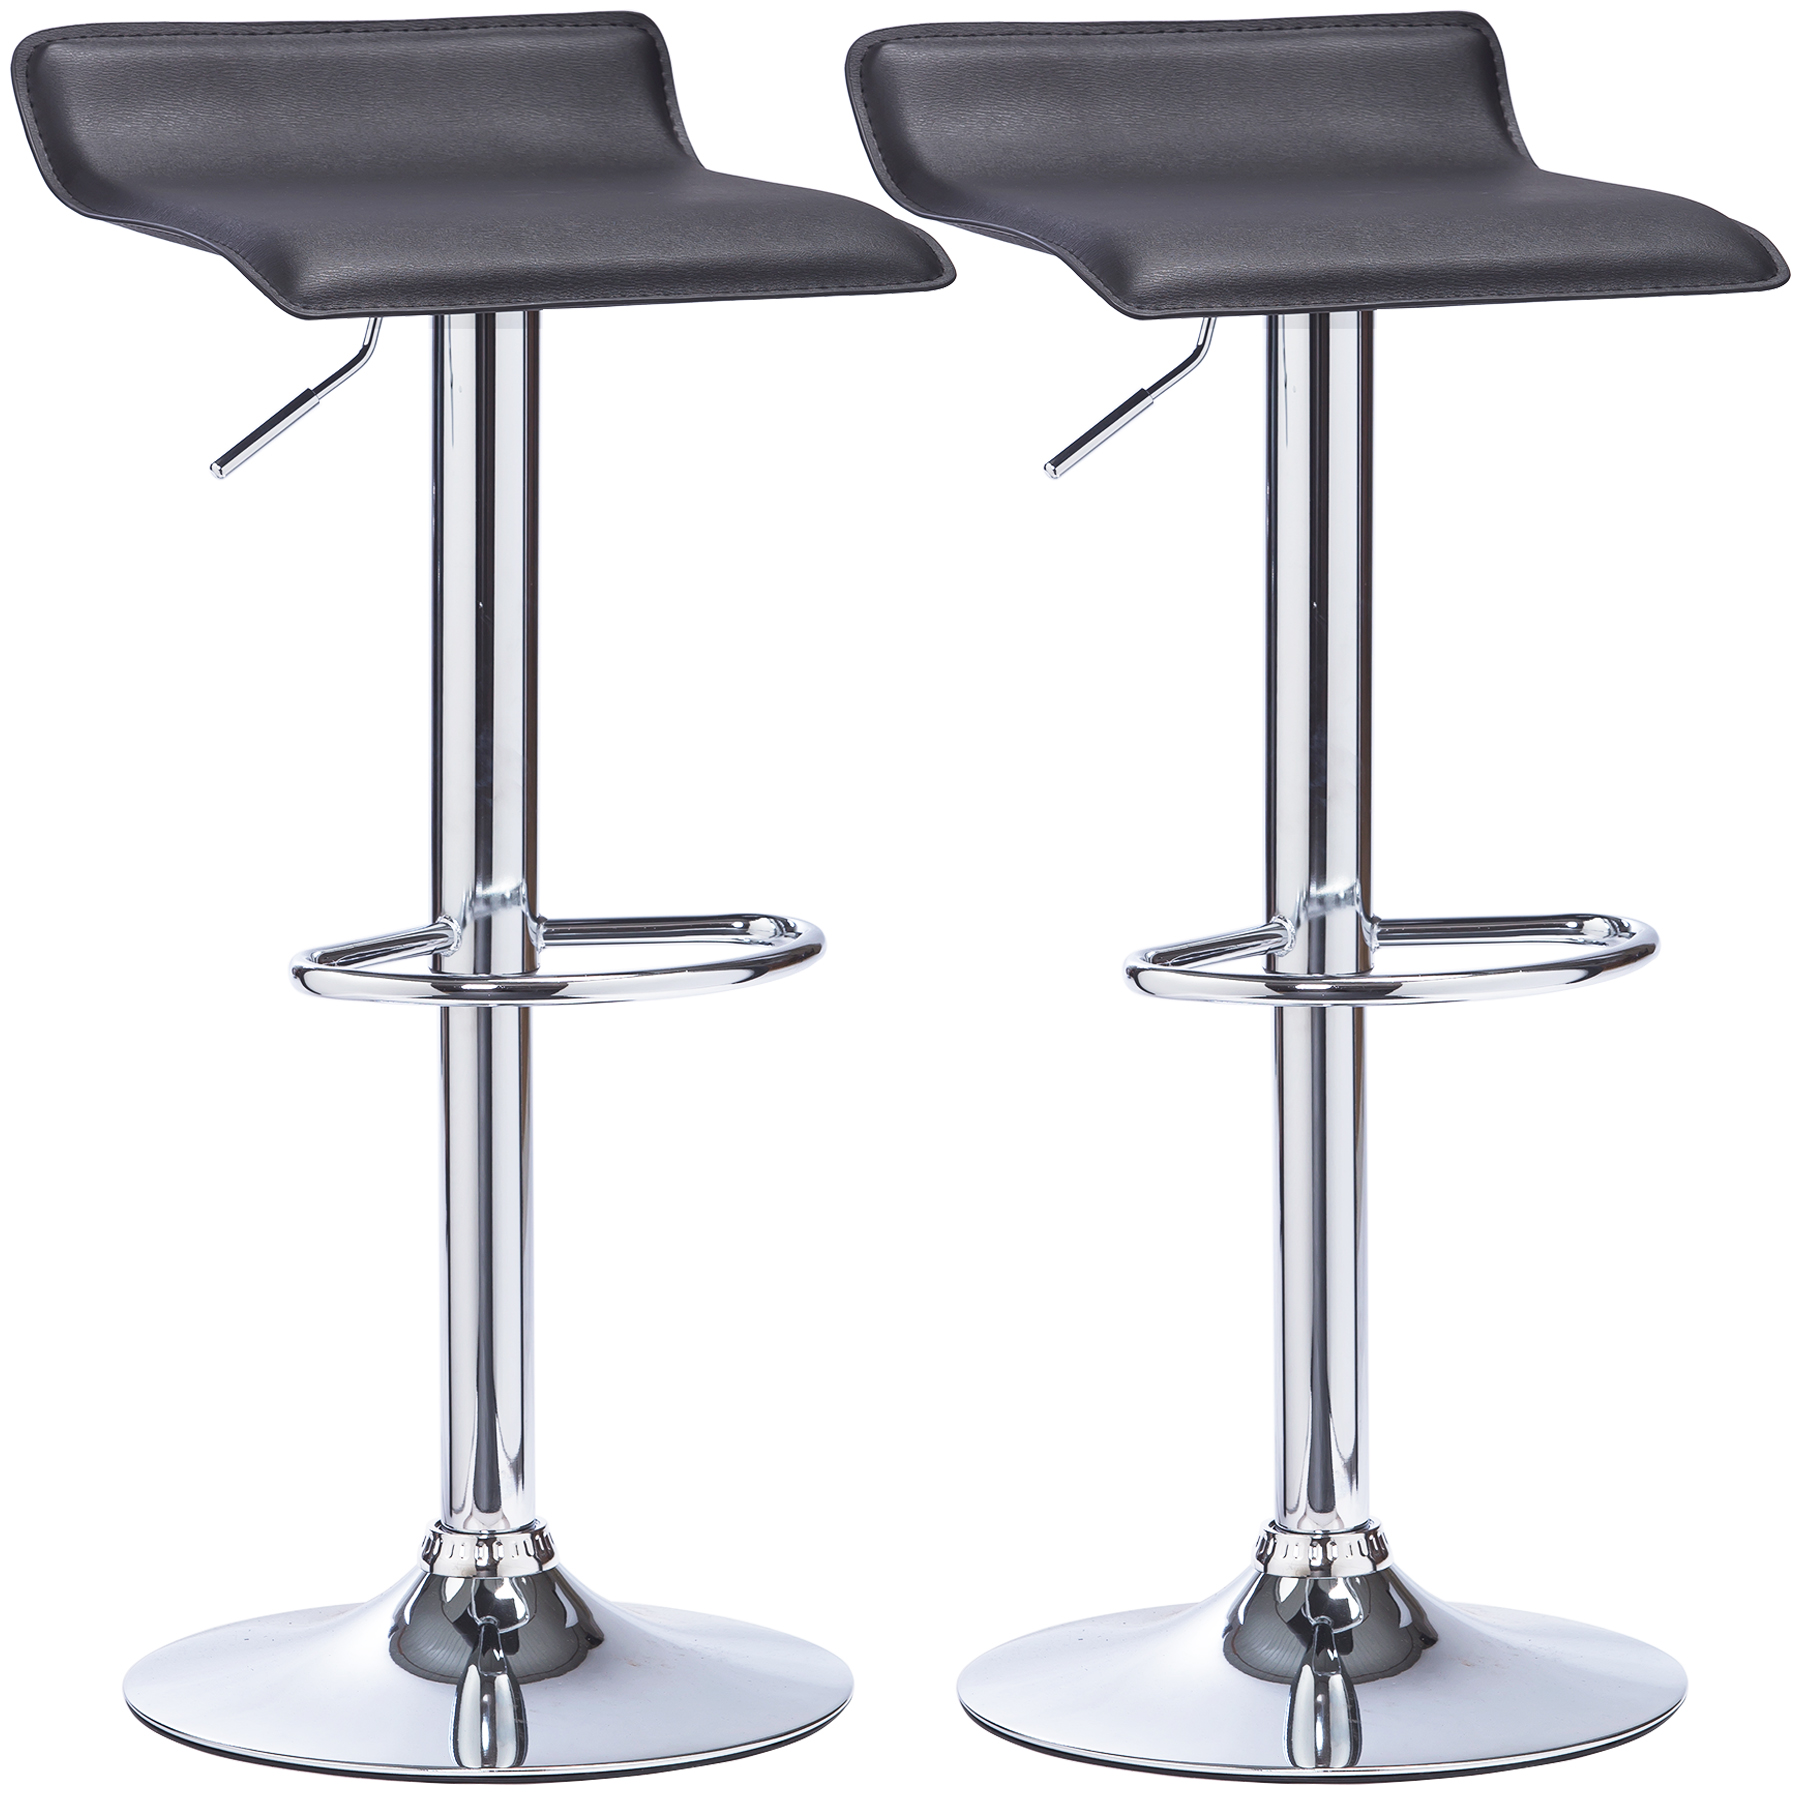 Kitchen Swivel Bar Stools Bar Stools Set Of 2 Swivel Kitchen Breakfast Stools Chair